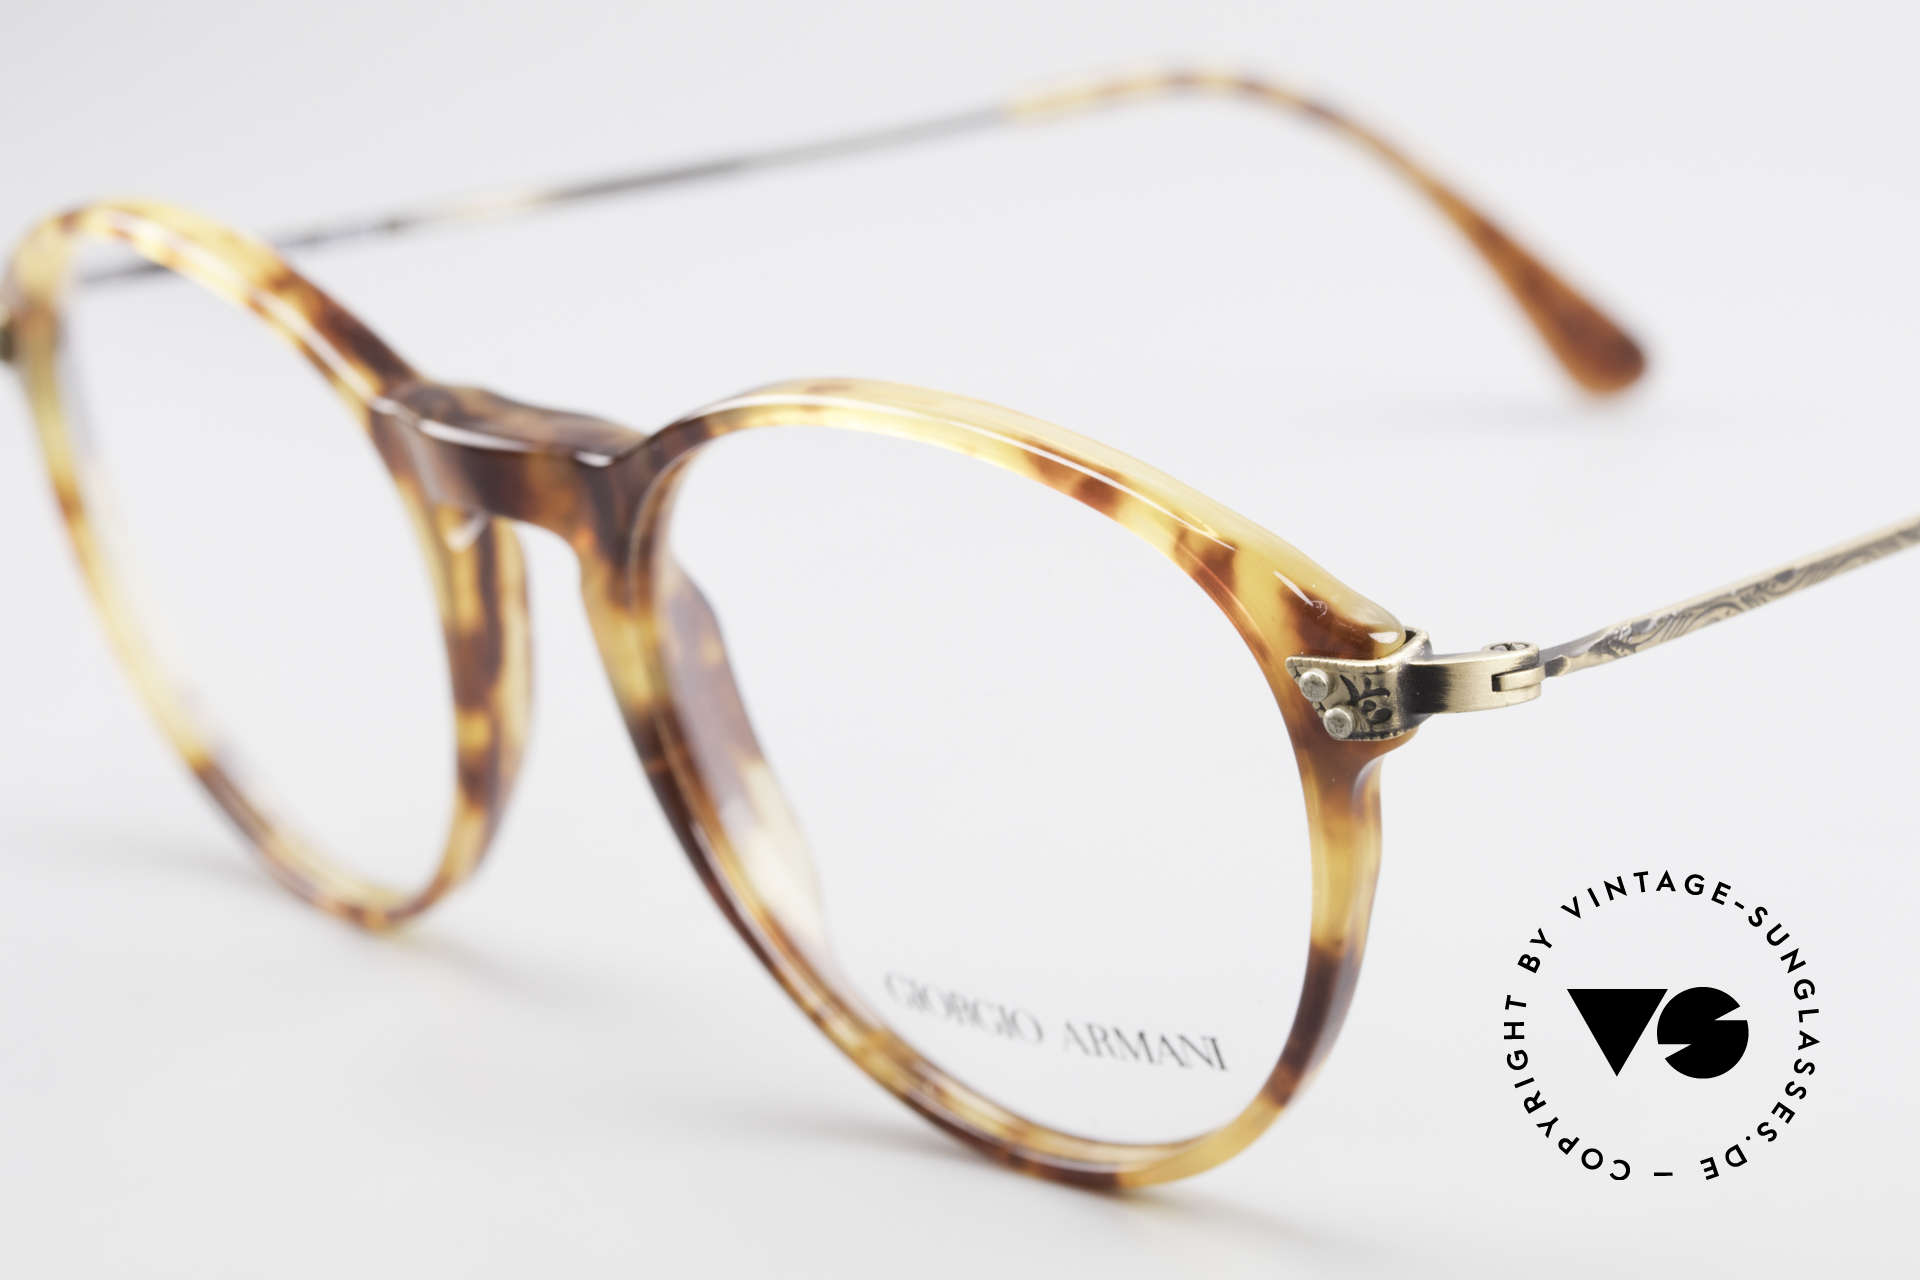 Giorgio Armani 329 Small 90's Panto Eyeglasses, amber / tortoise front & costly formed brass temples, Made for Men